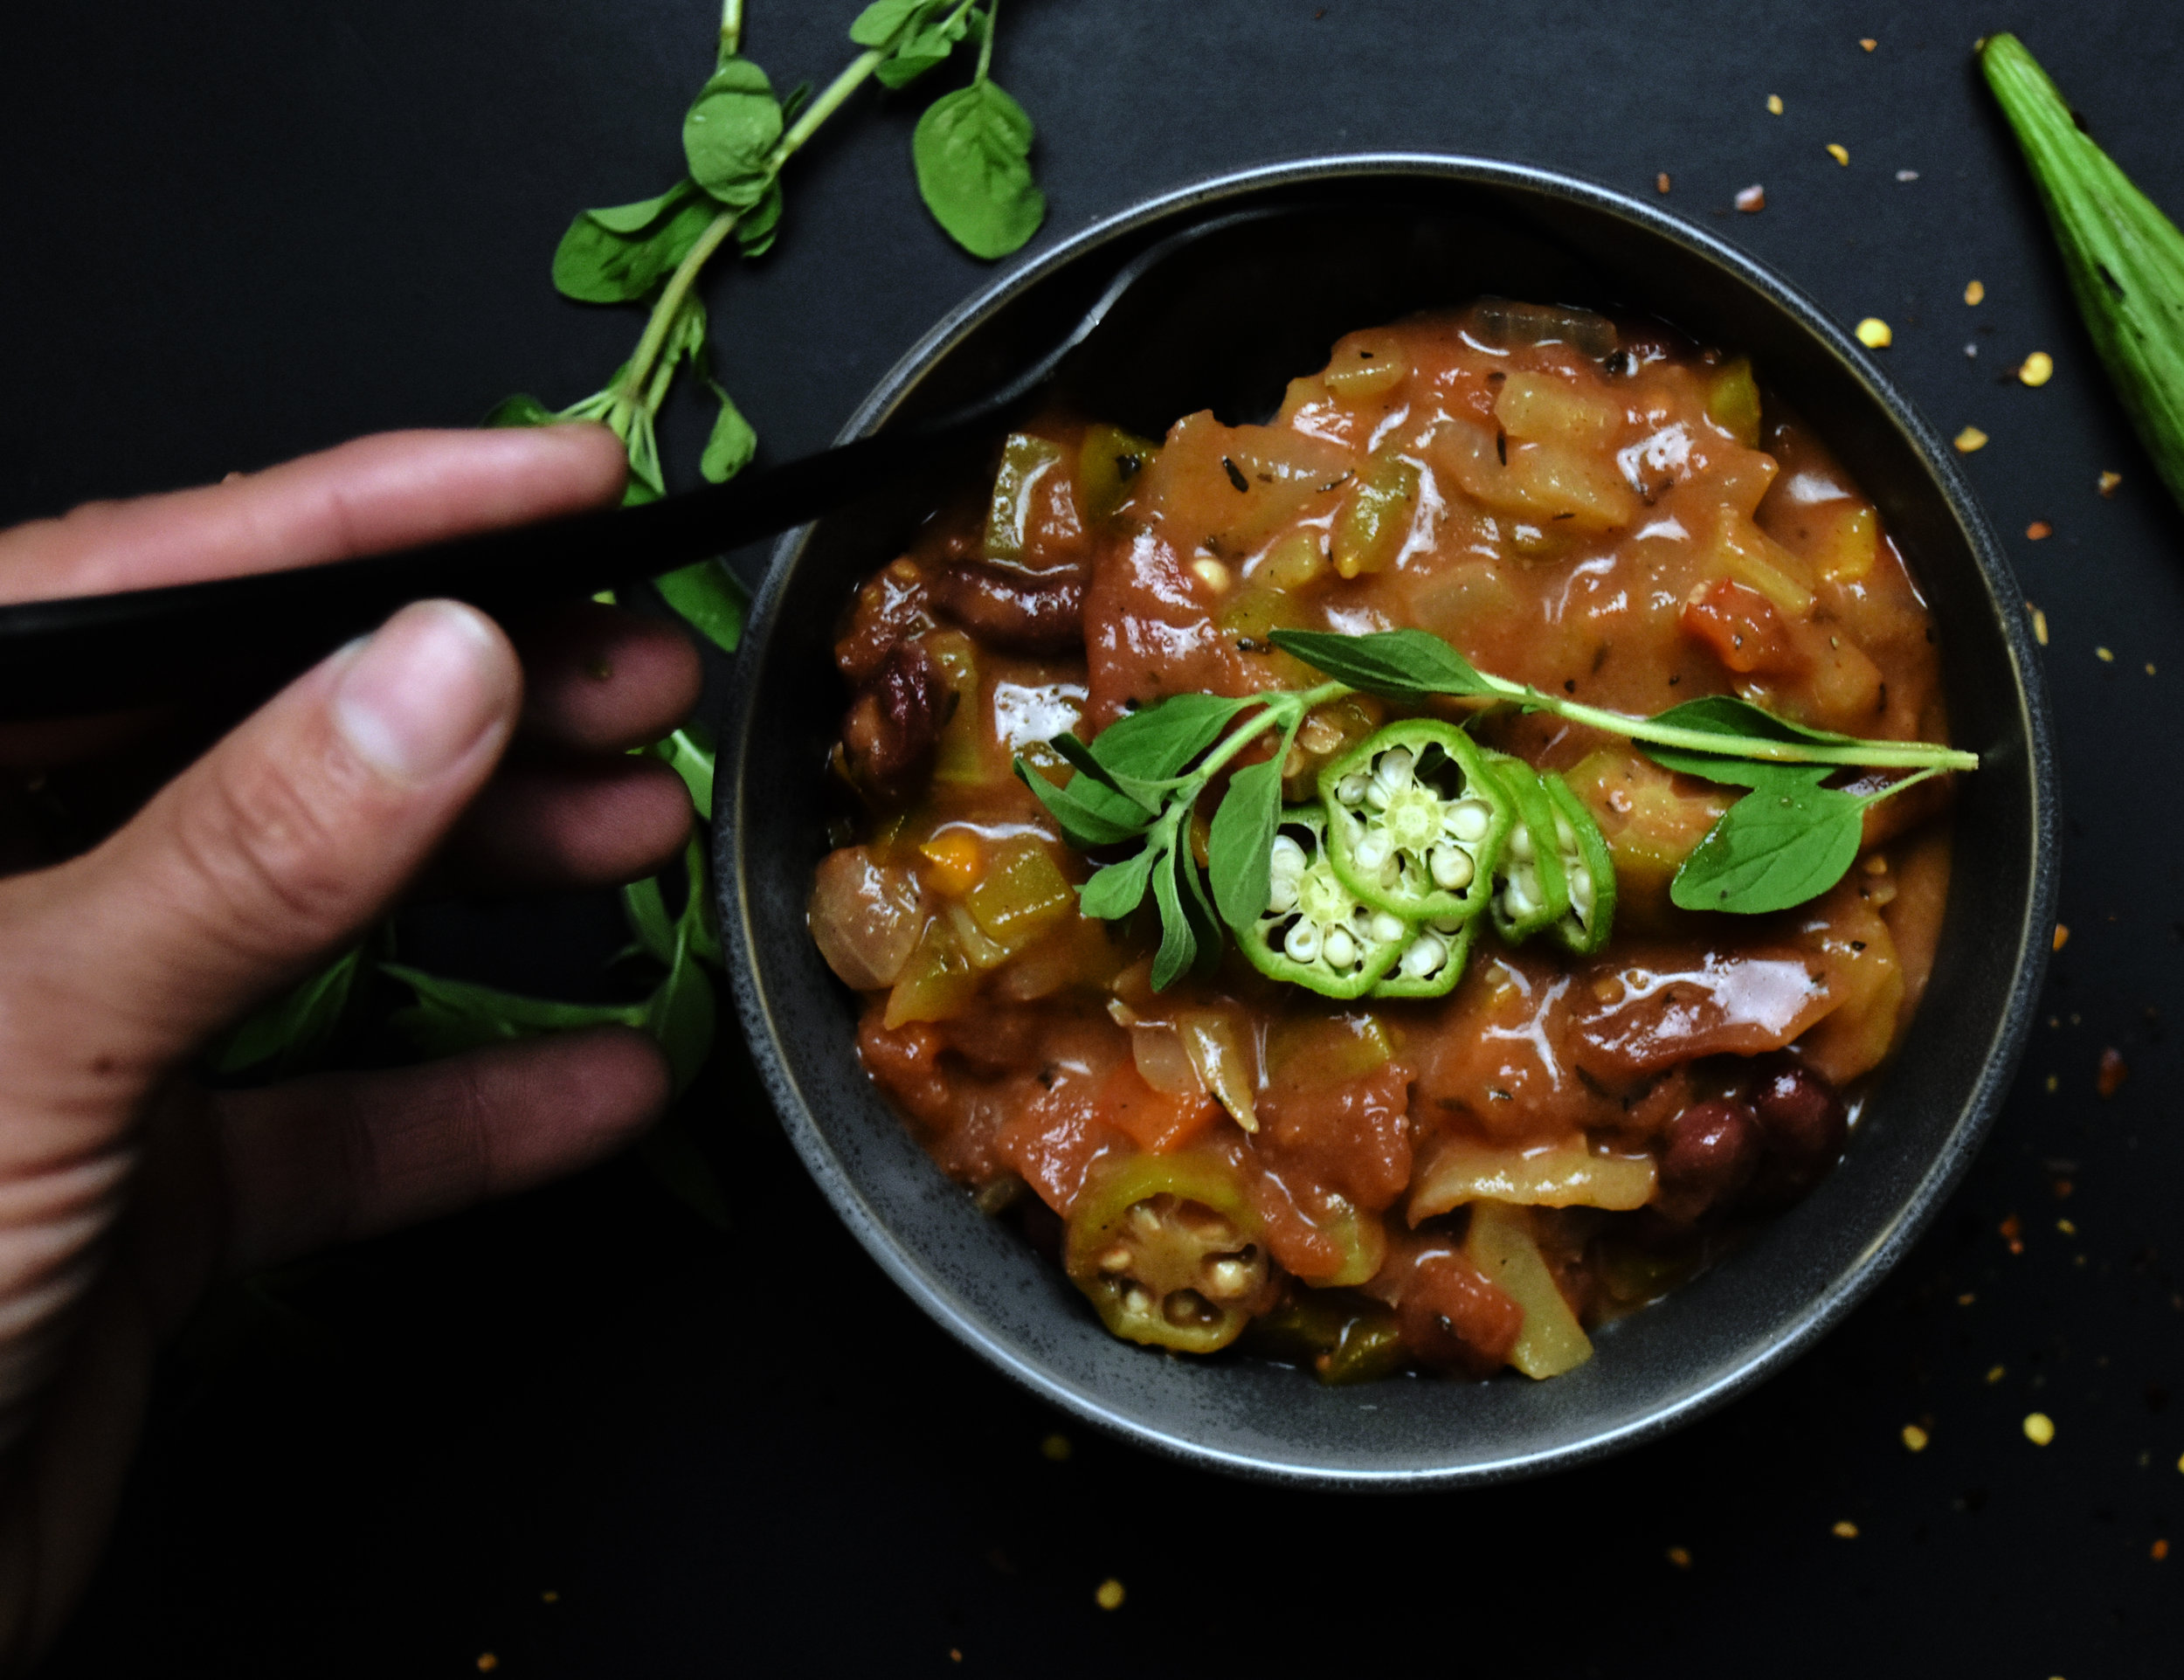 vegan gumbo - the best way to refuel after spending a day in the woods getting dirty